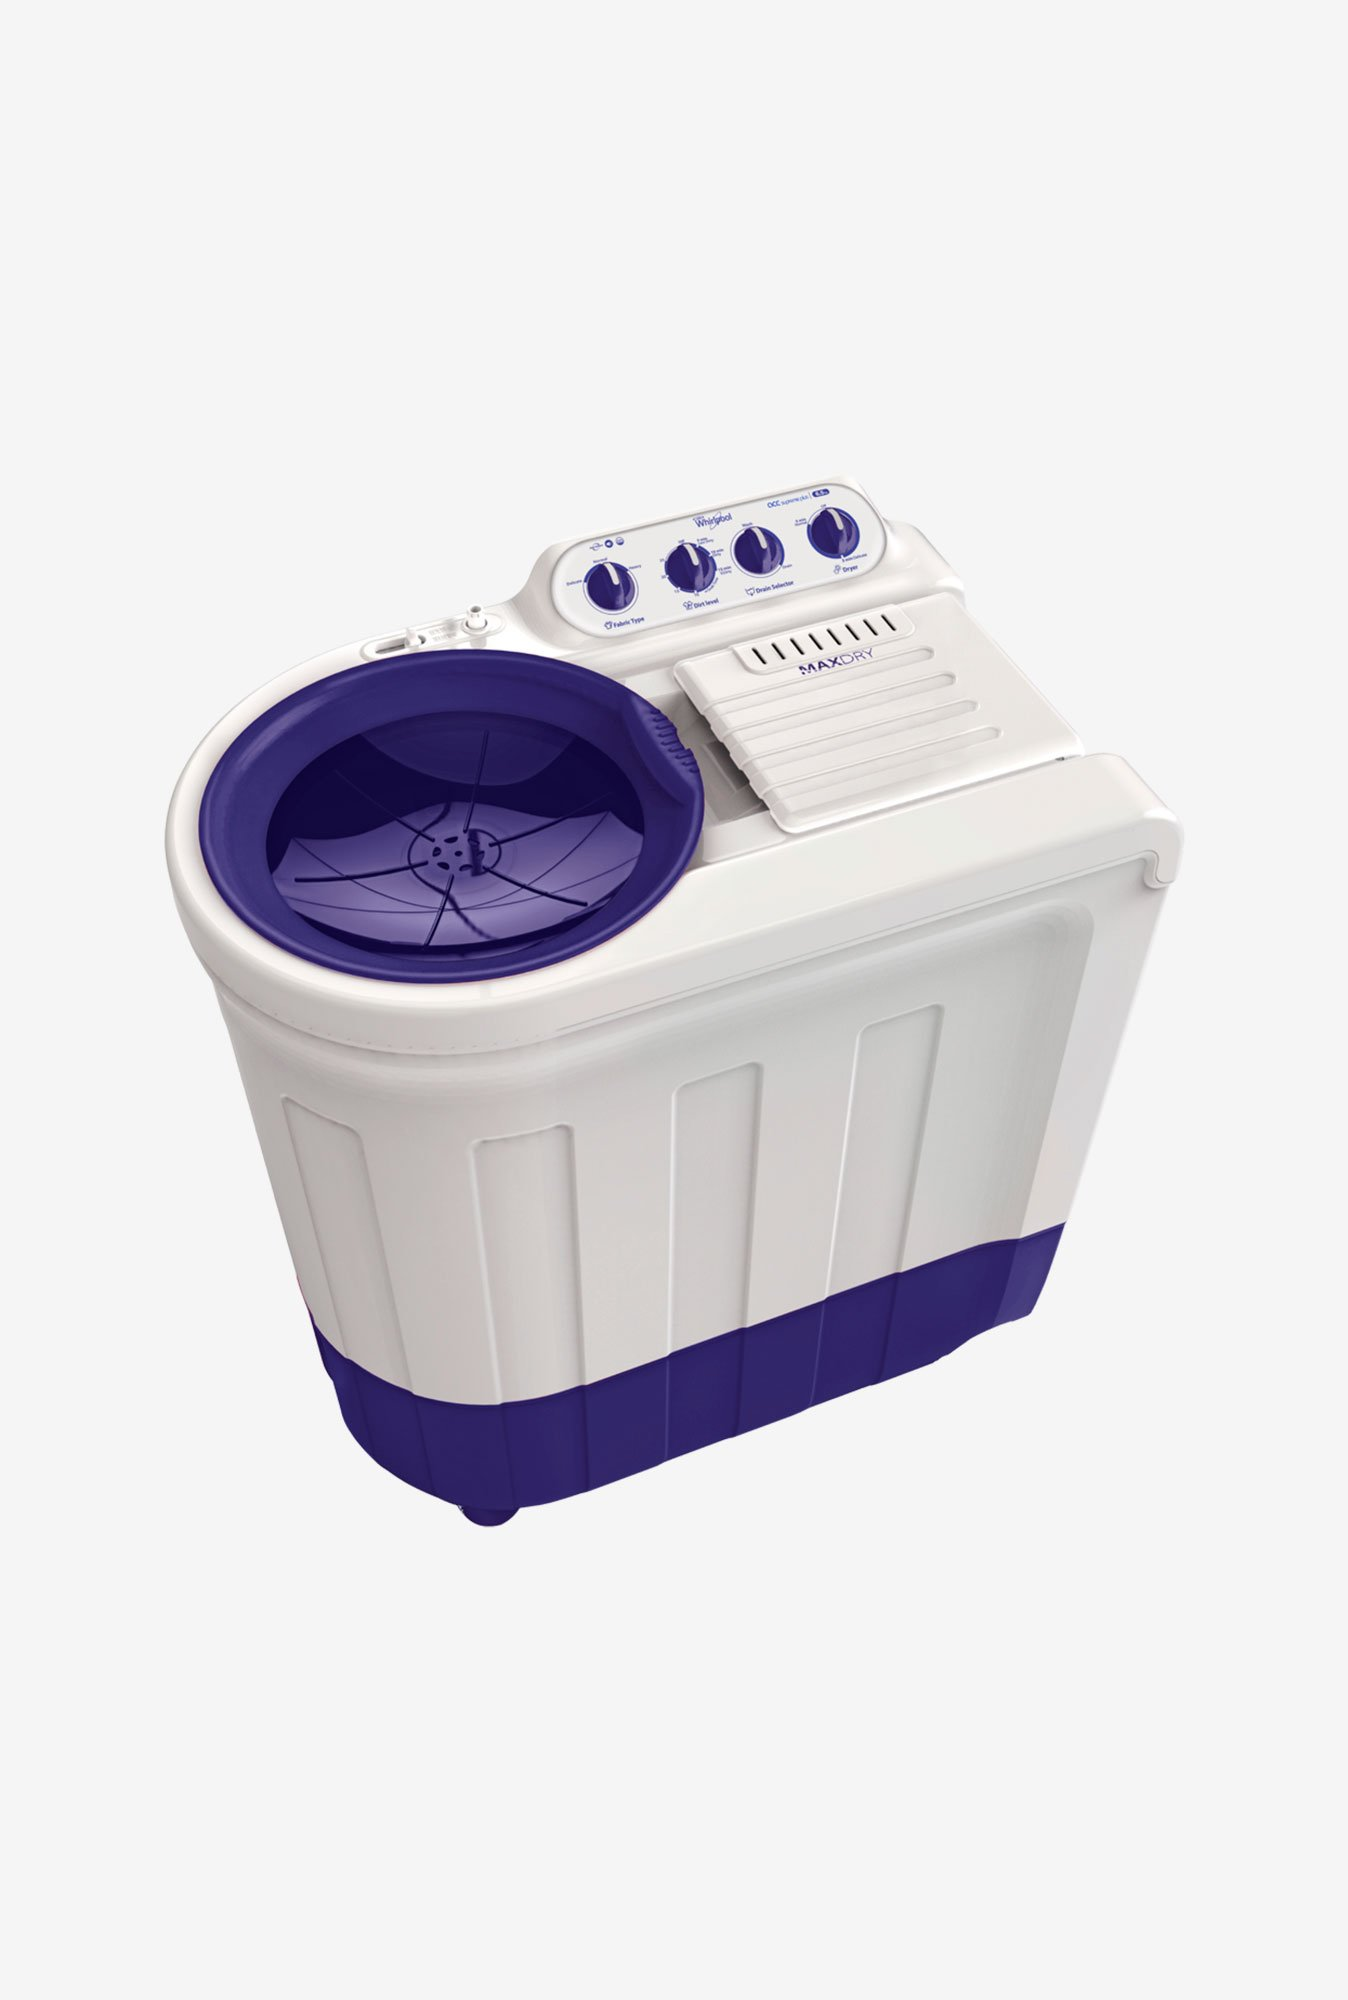 Whirlpool Ace 6.5 Supreme Plus Washing Machine Peppy Purple